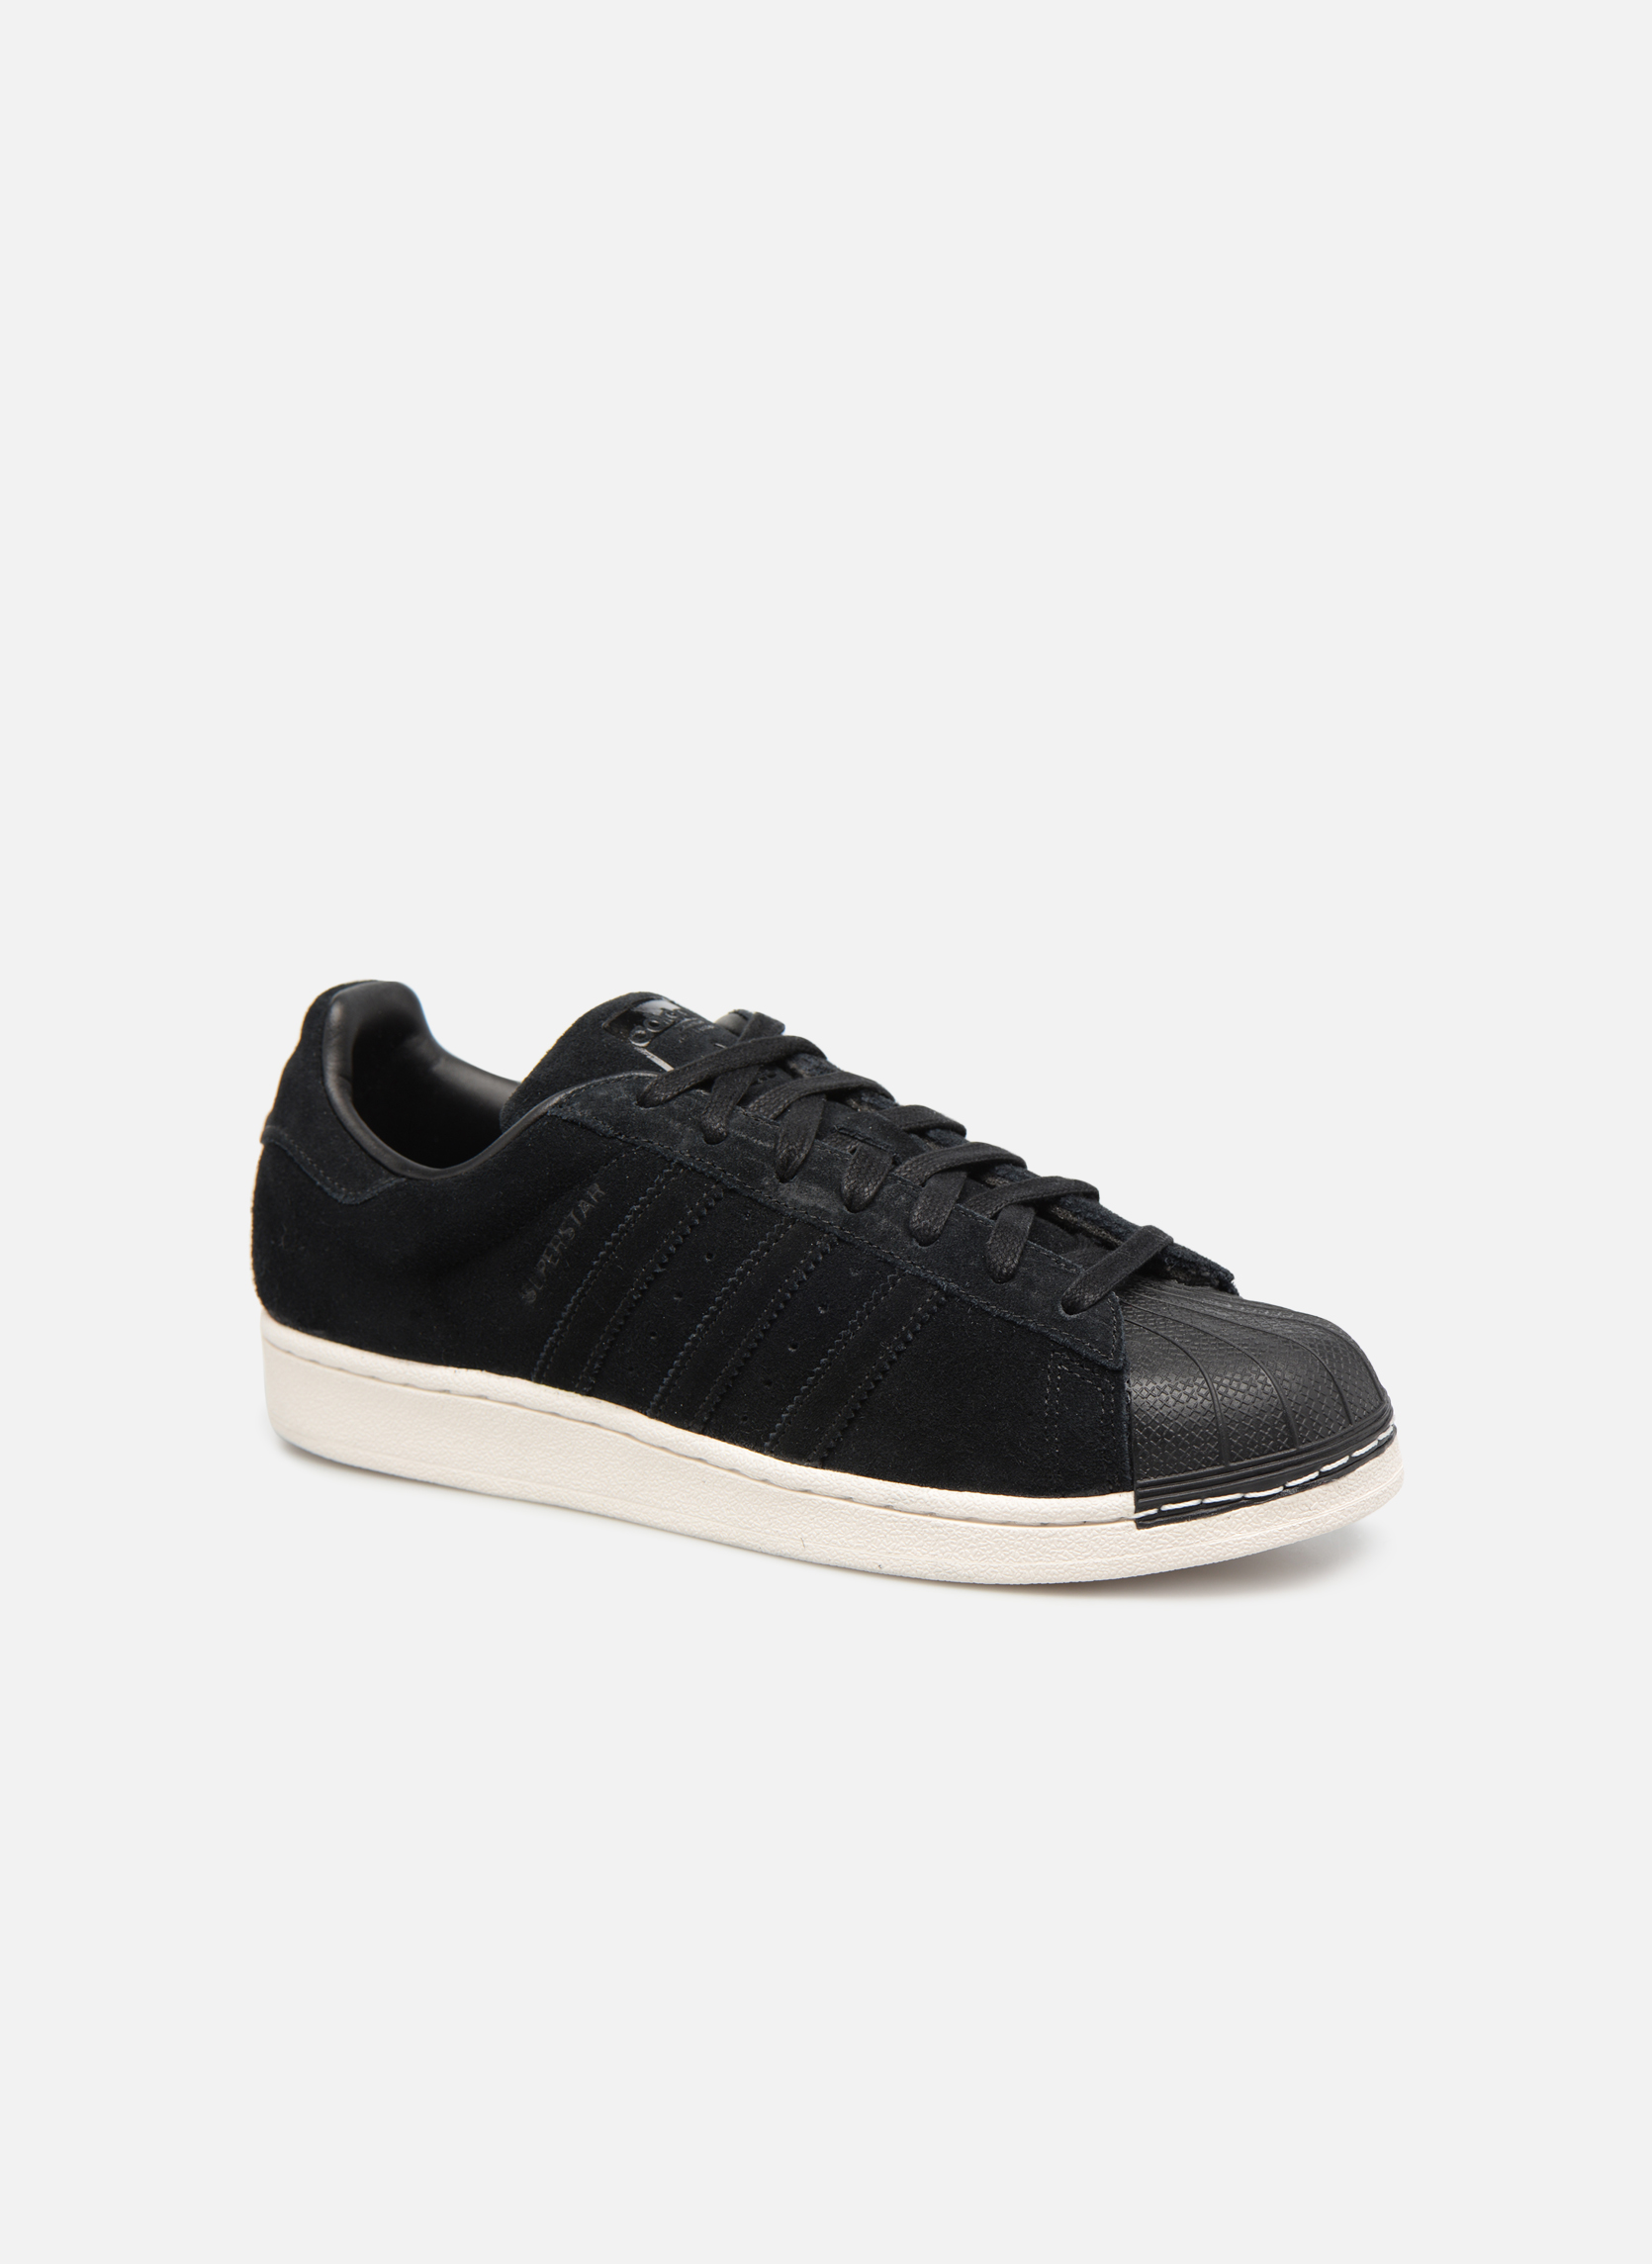 adidas superstar grön